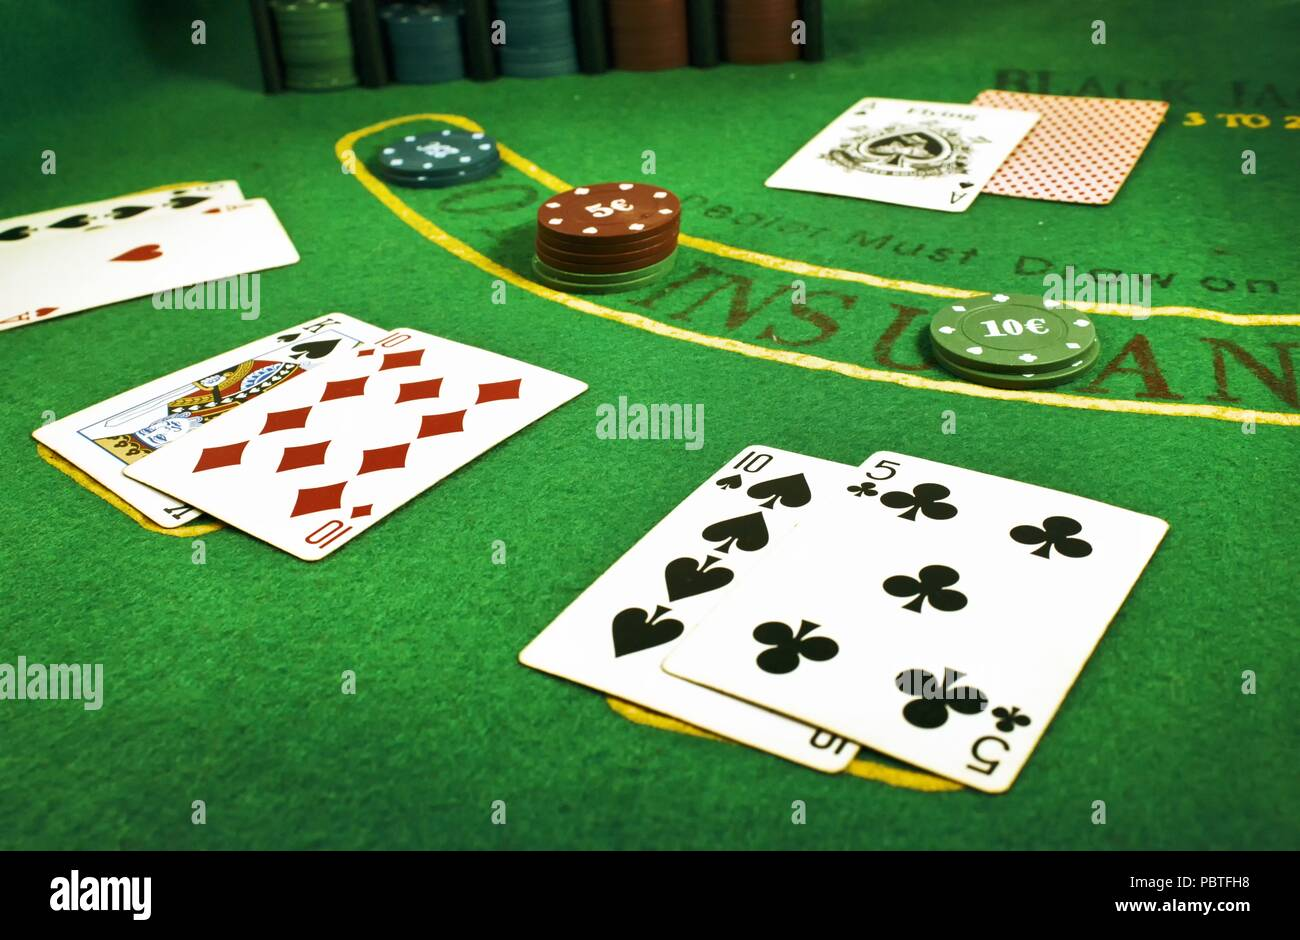 Closeup of dealt cards and stacks of chips on a Blackjack table in a casino - Stock Image